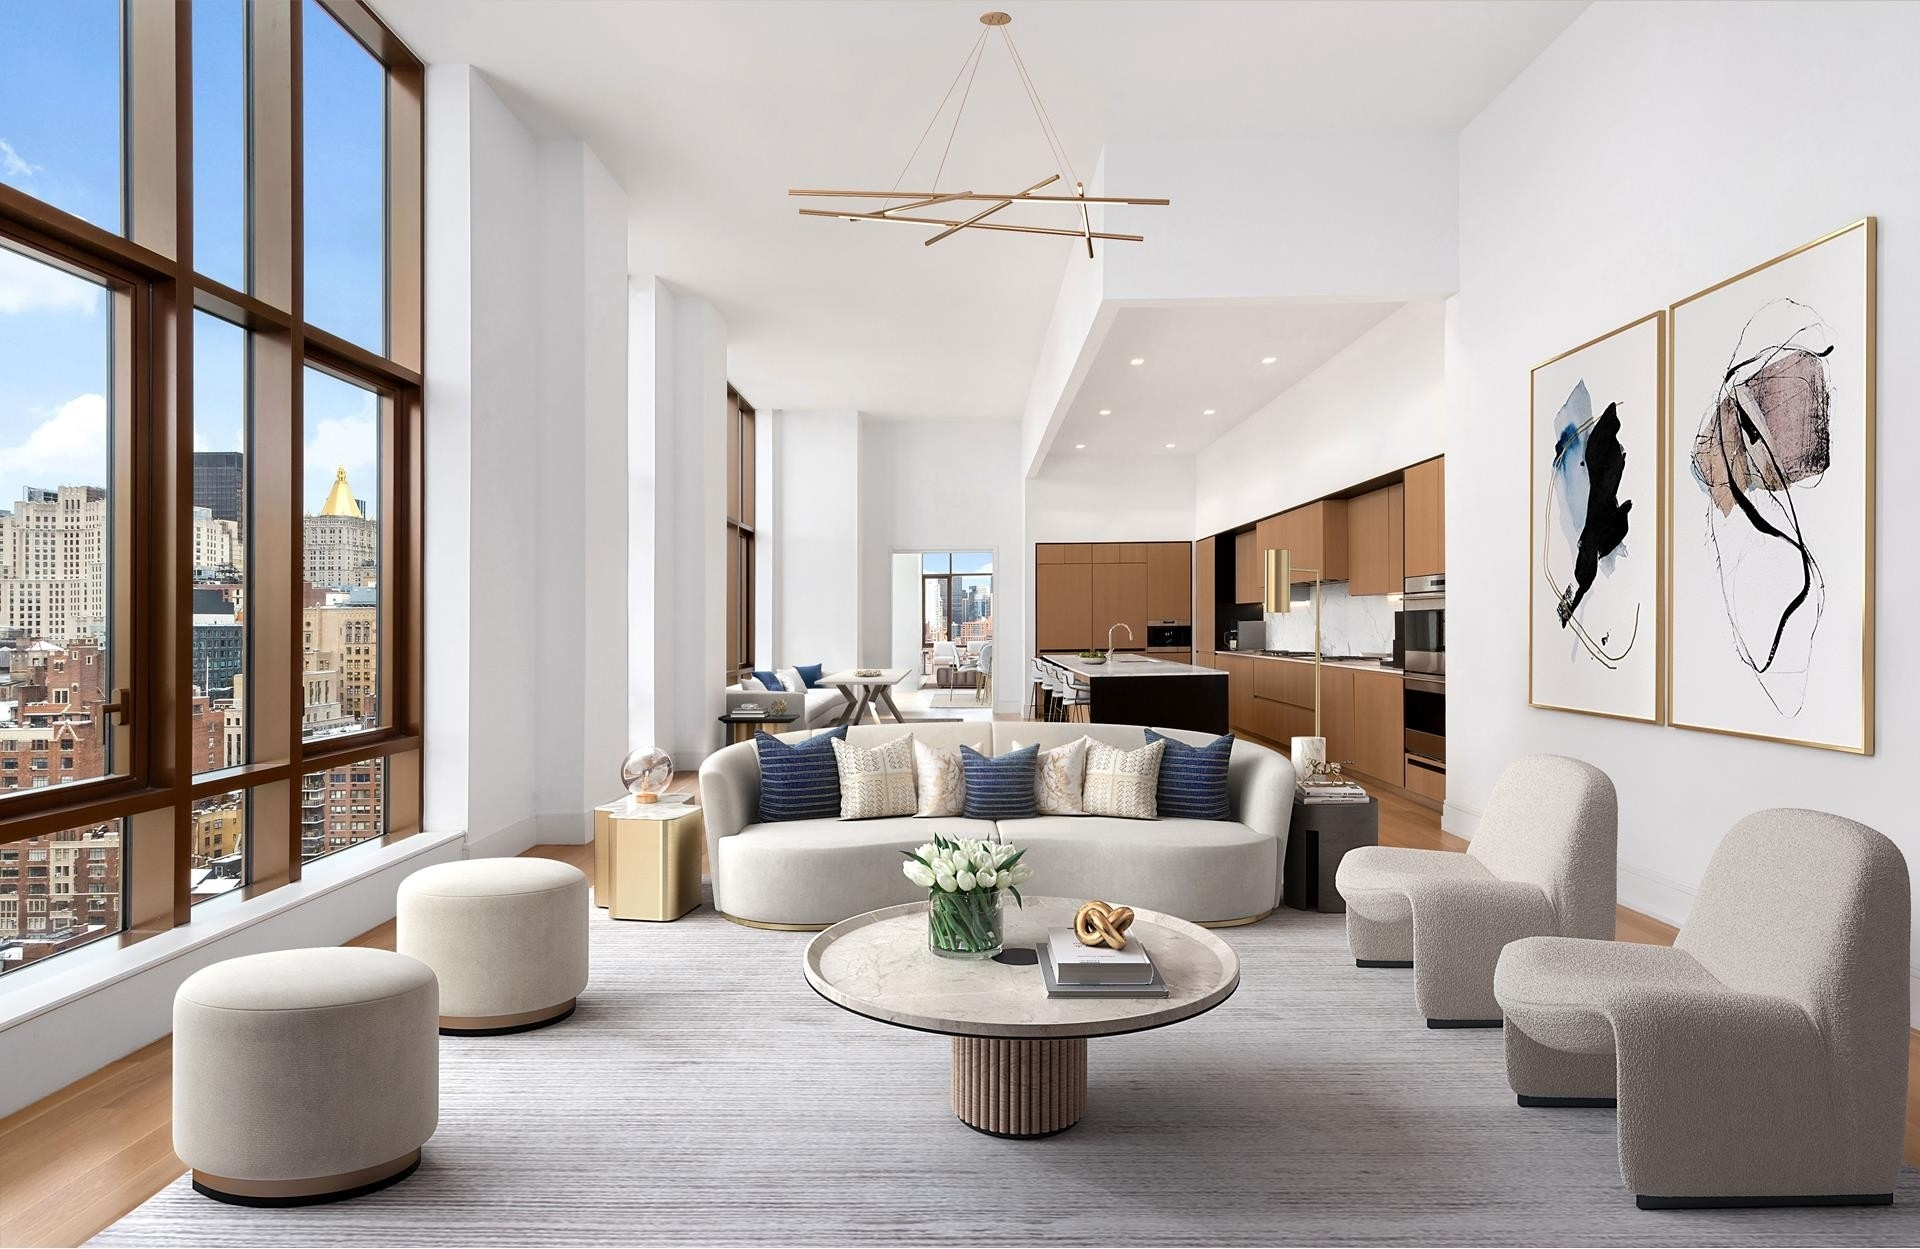 Property в Gramercy Square, 215 E 19TH ST , 17B Gramercy Park, New York, NY 10003